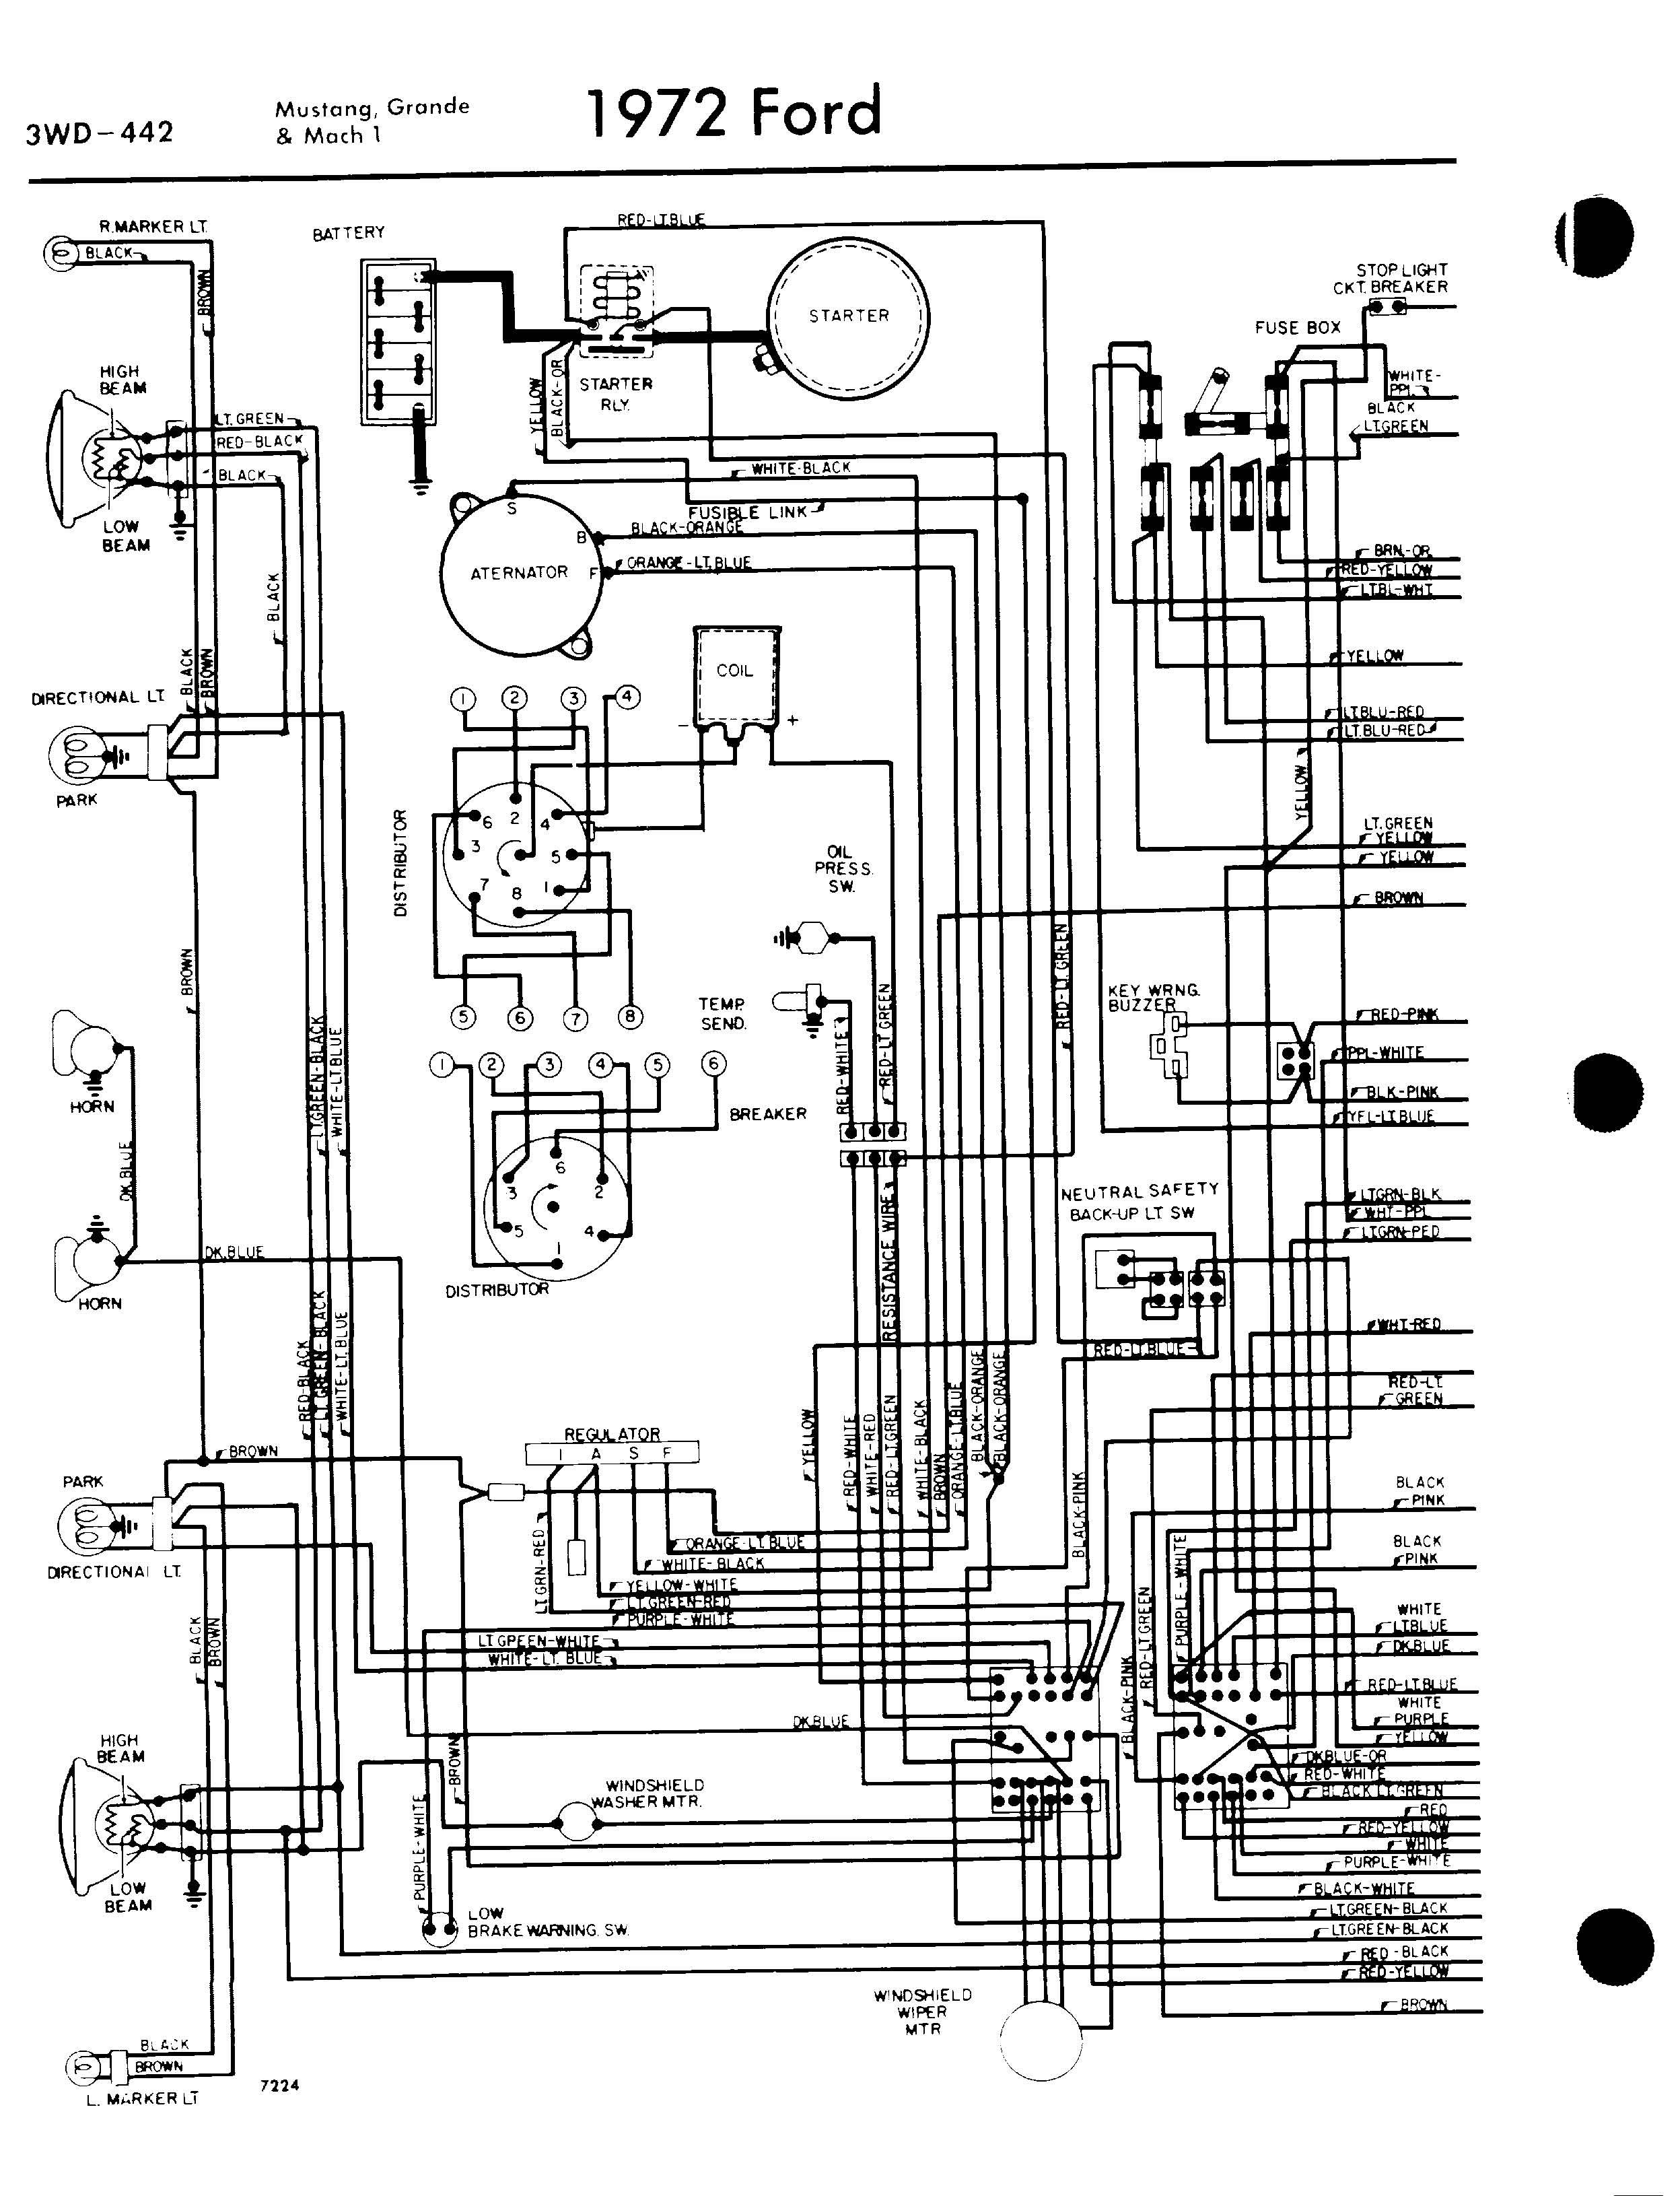 small resolution of 1970 mustang fuse diagram wiring diagram data val 2005 ford mustang fuse box 1970 mustang fuse